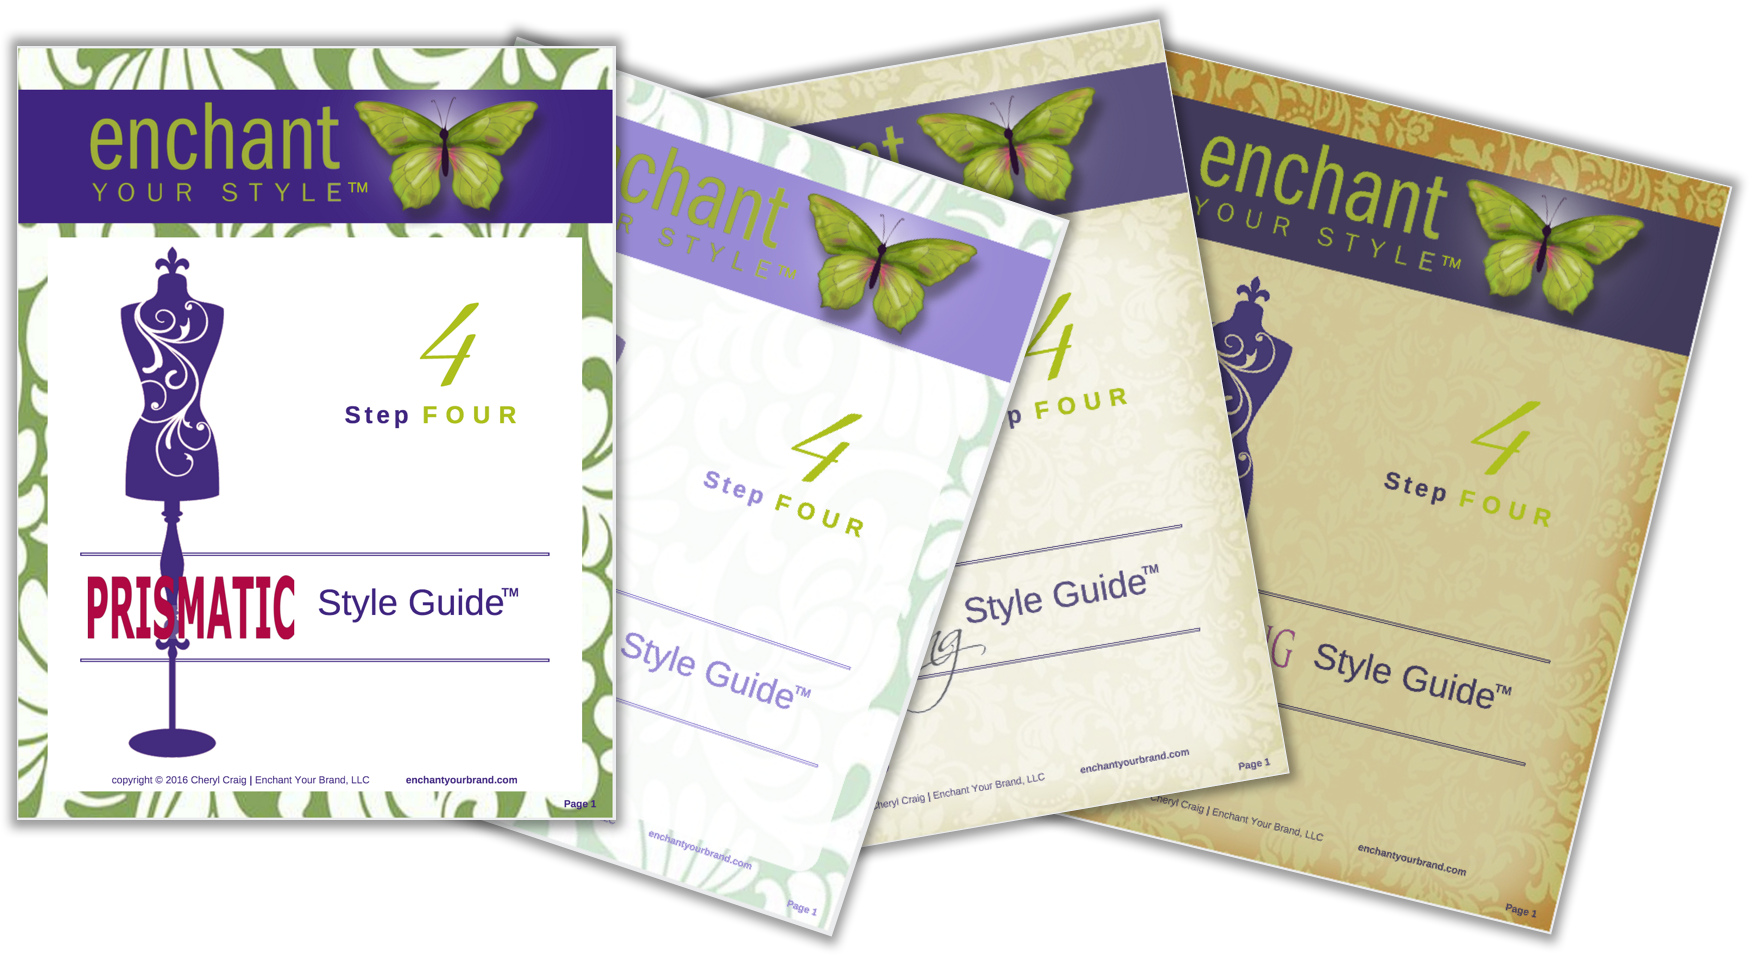 Step 4 Style Guide All 4 Cover Images